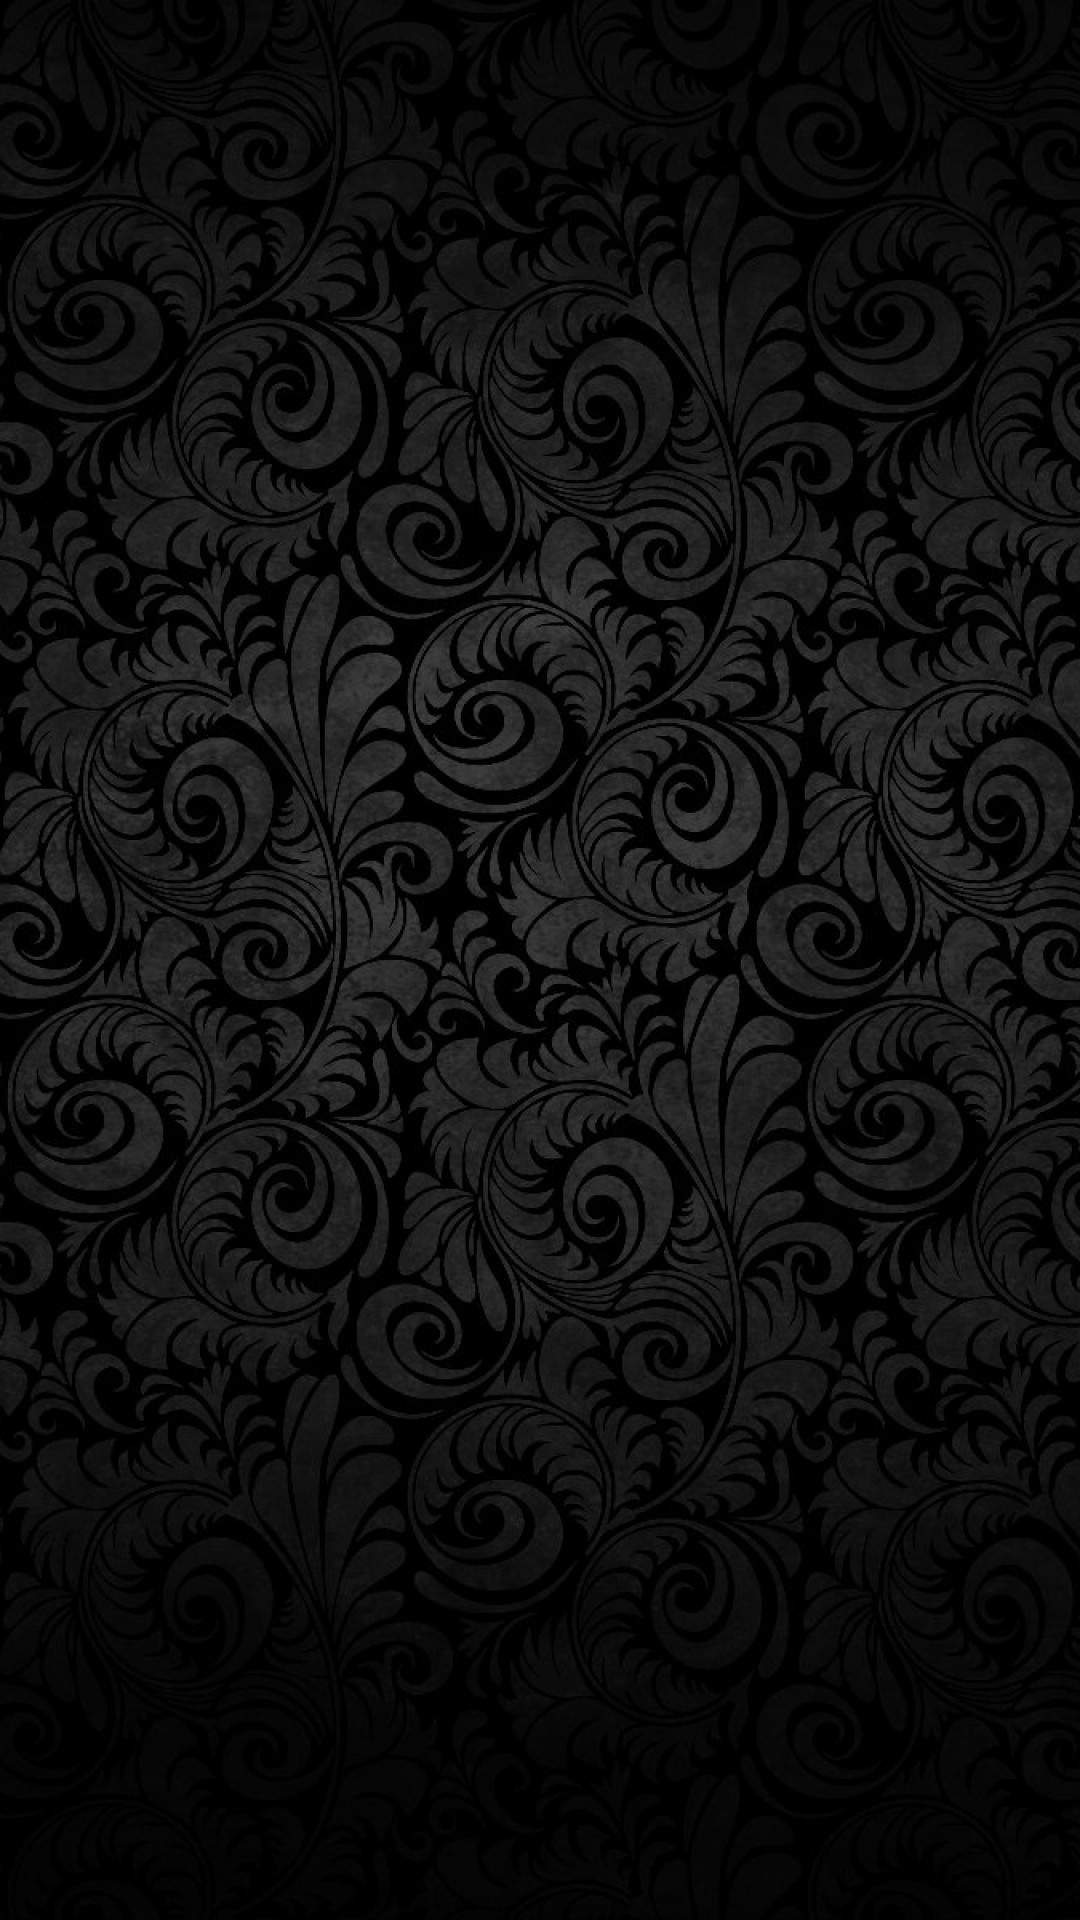 Black phone wallpaper download free beautiful high resolution 1080x1920 iphone 6s black flower abstract wallpaper hdiphone 6s black flower abstract voltagebd Image collections